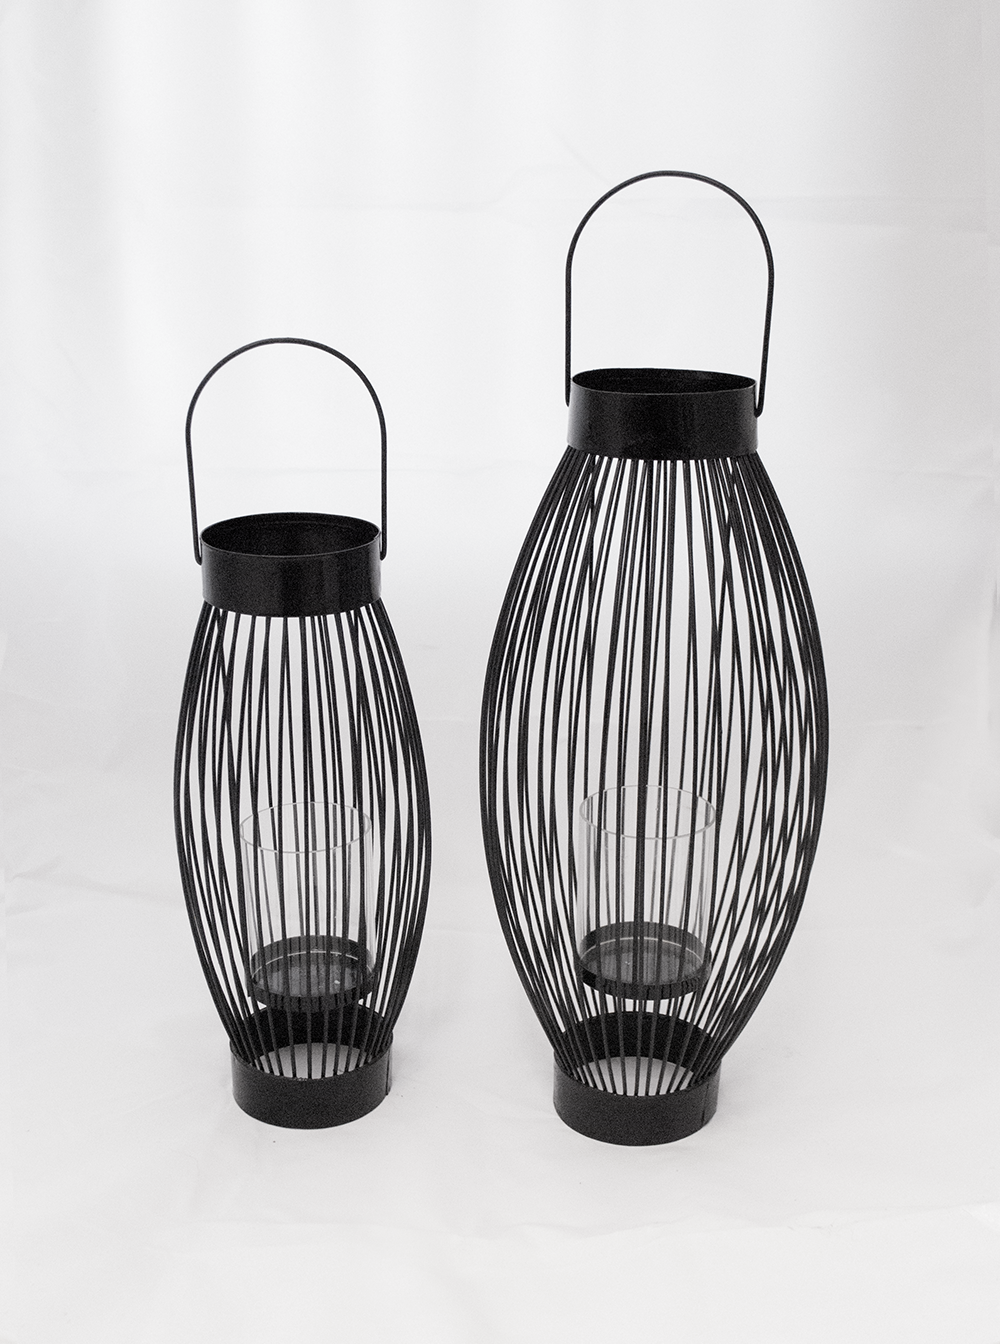 Page Lantern  Black metal + glass cylinder  Quantity: (Short. 3 ) - (tall. 3)  Price: $10.00 - $15.00